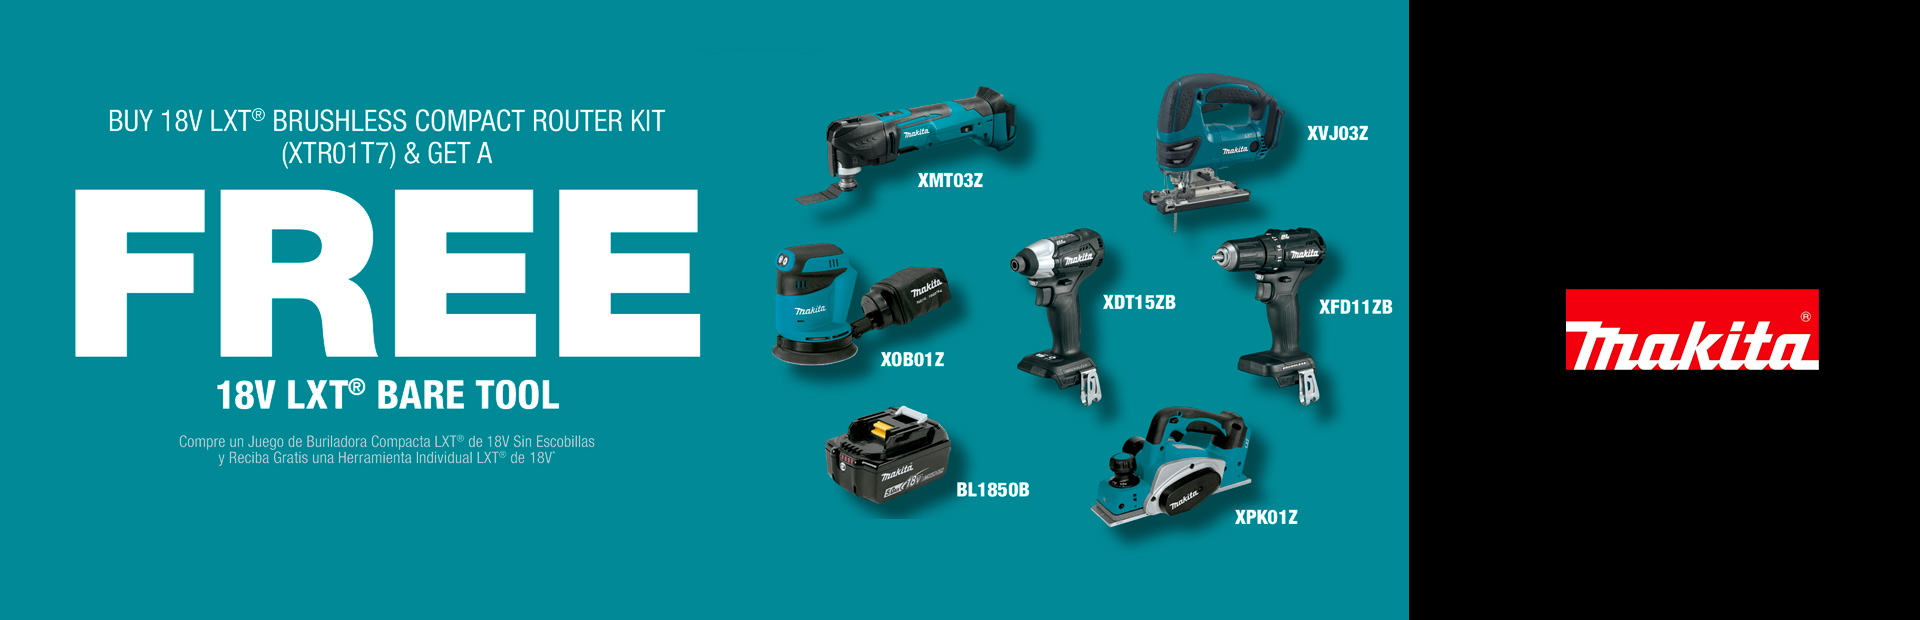 Makita: BUY 18V LXT® BRUSHLESS COMPACT ROUTER KIT XTR01T7